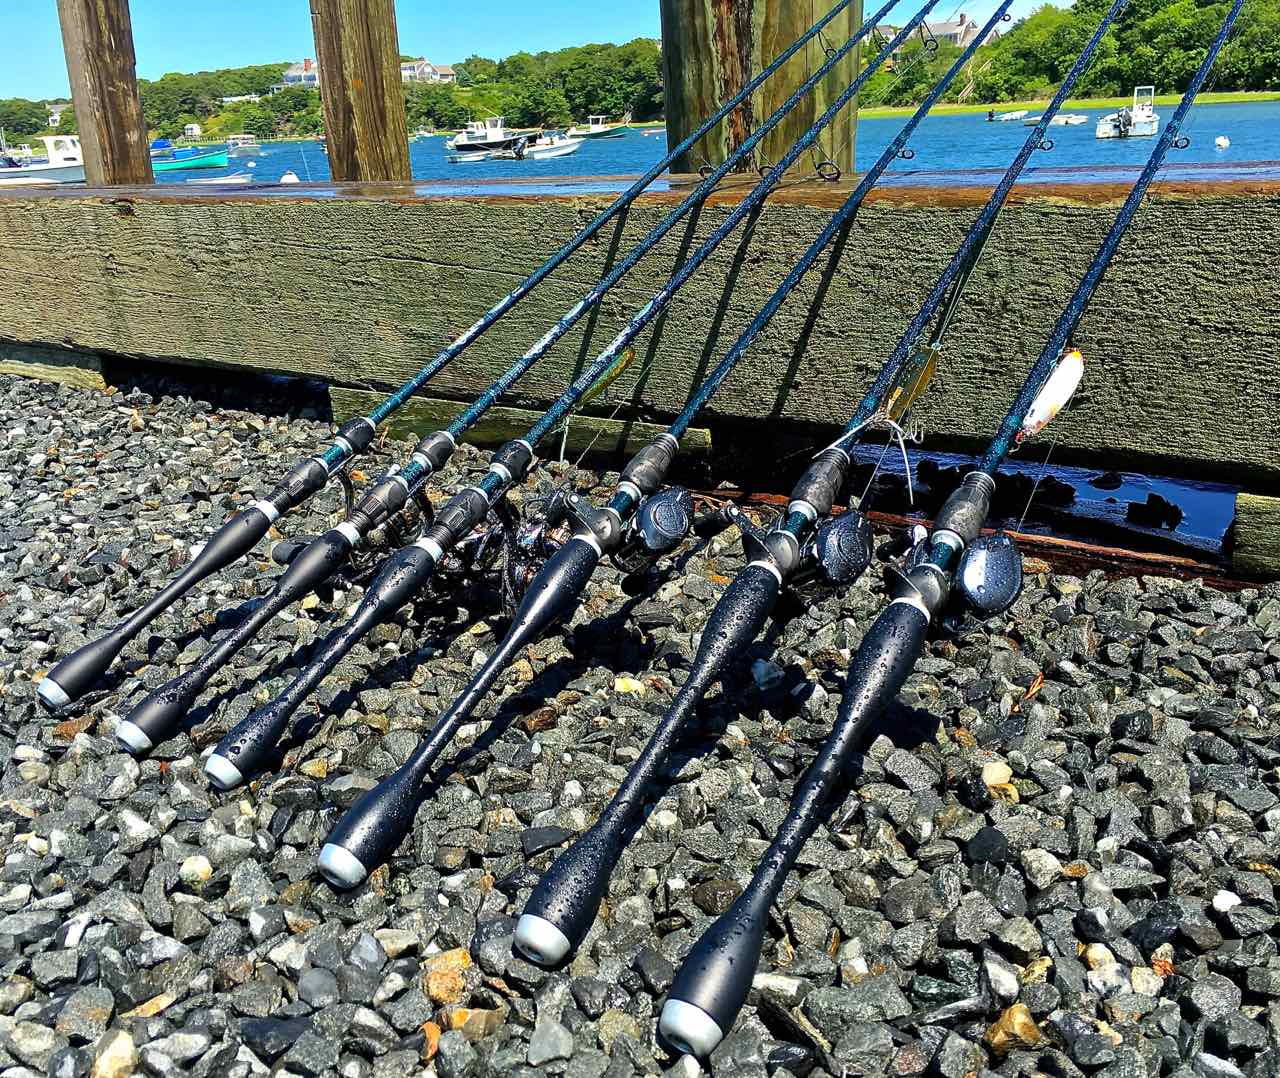 St Croix Line up of Legend Extreme Spinning and Baitcast Fishing Rods BBB